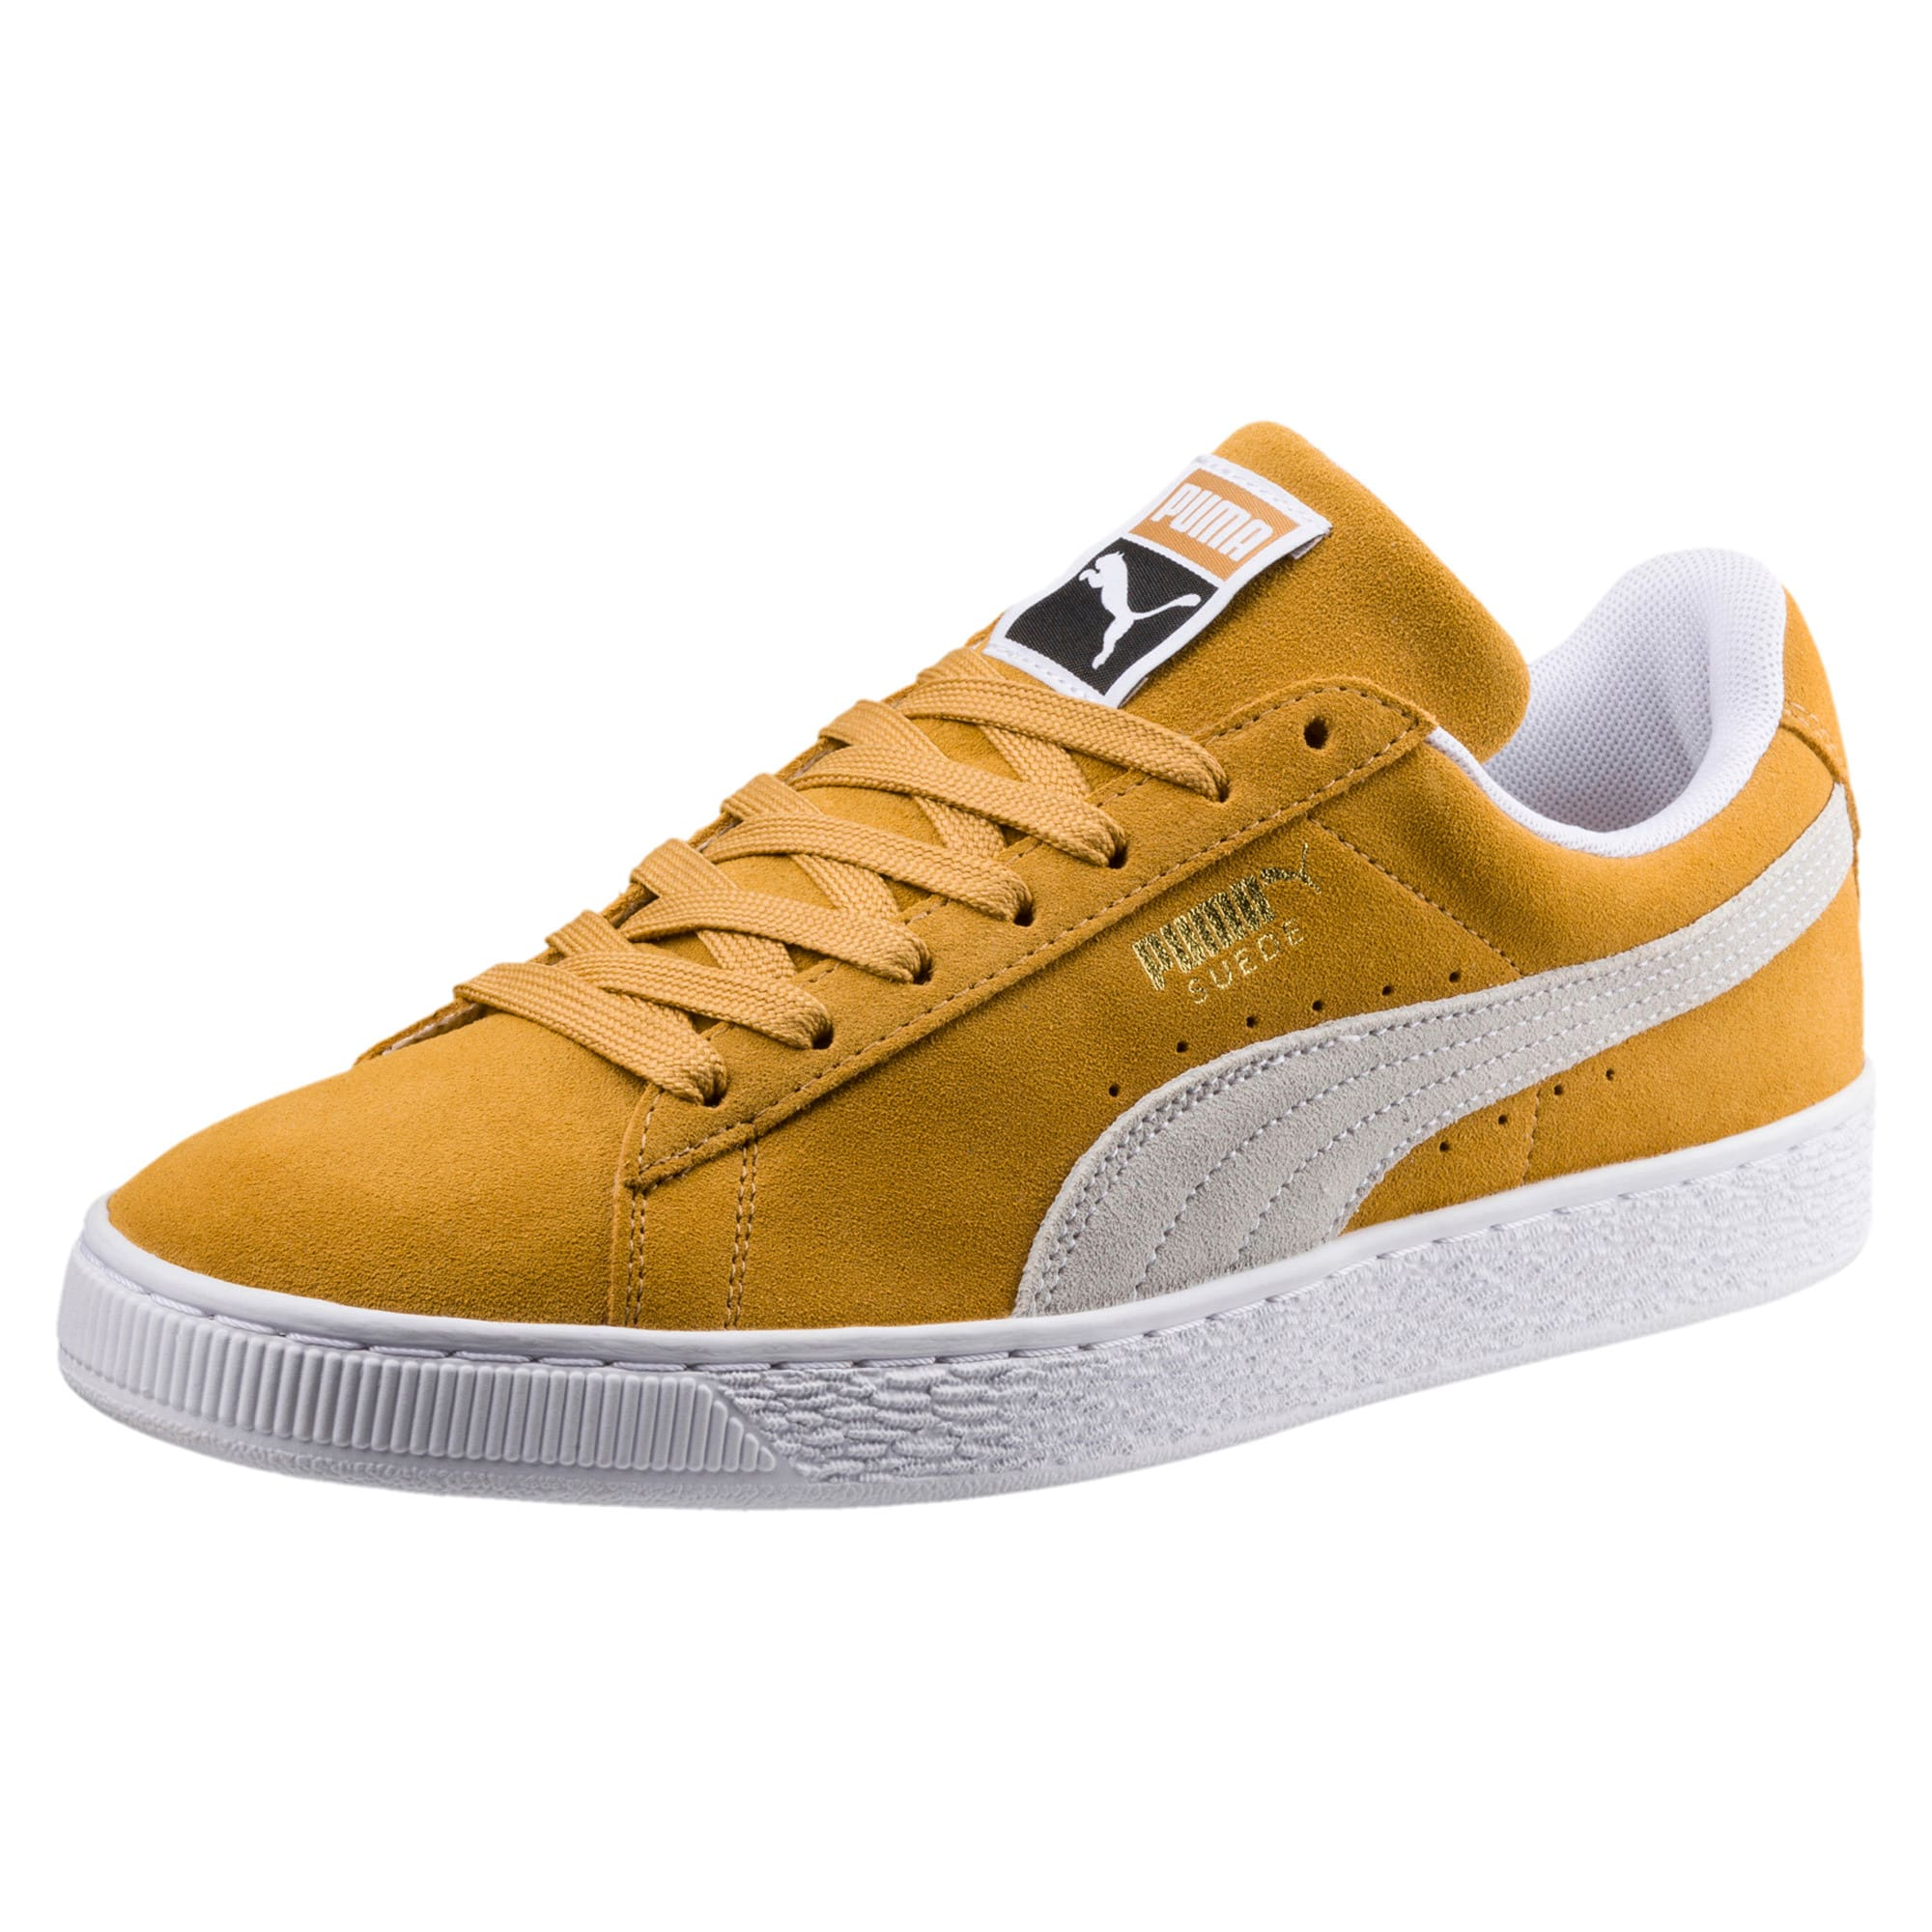 Thumbnail 1 of Suede Classic Trainers, Honey Mustard-Puma White, medium-IND